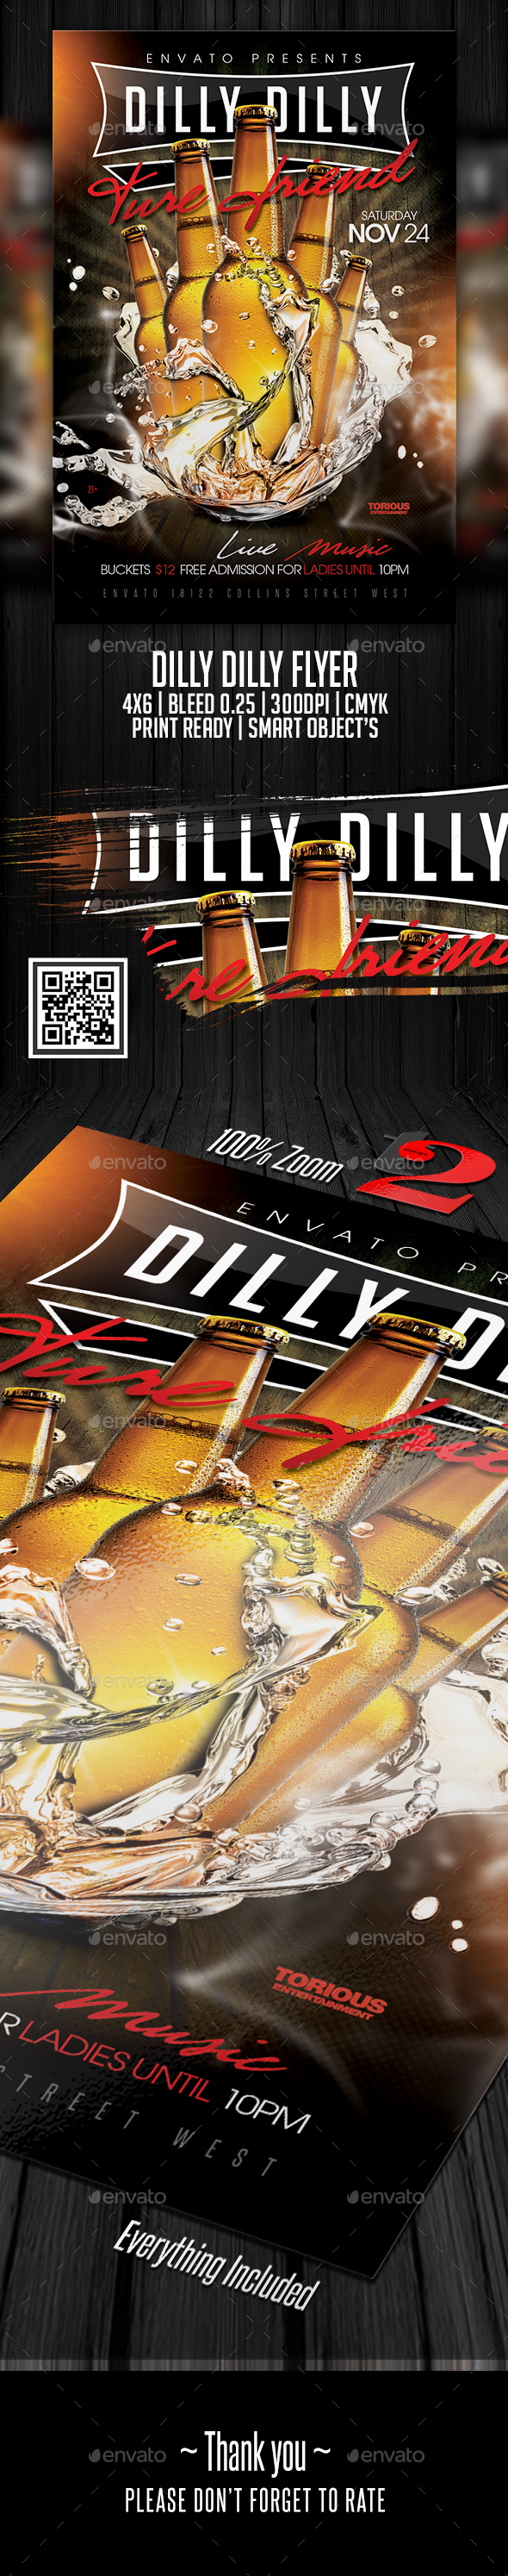 Dilly Dilly Party Flyer Template - Clubs & Parties Events